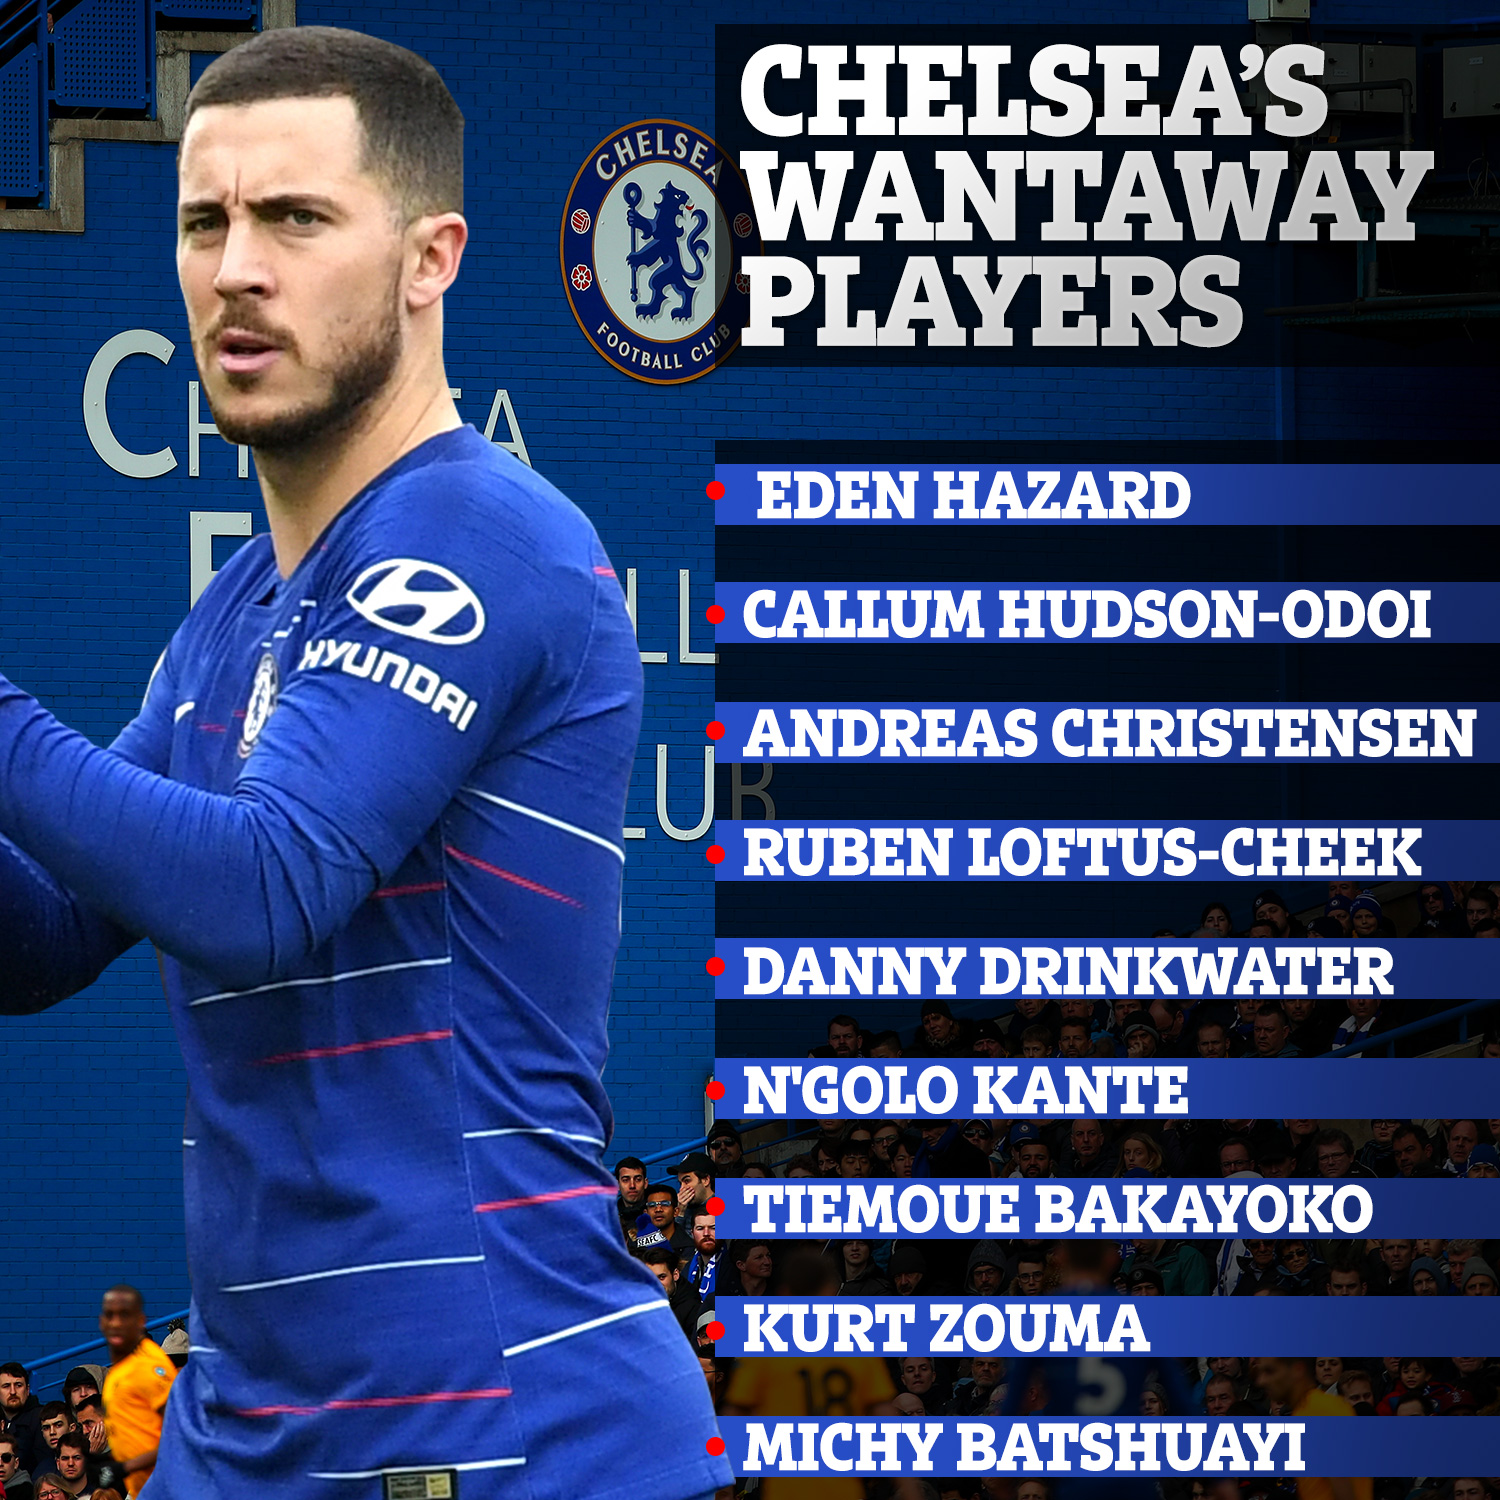 Chelsea players to be affected by the transfer ban